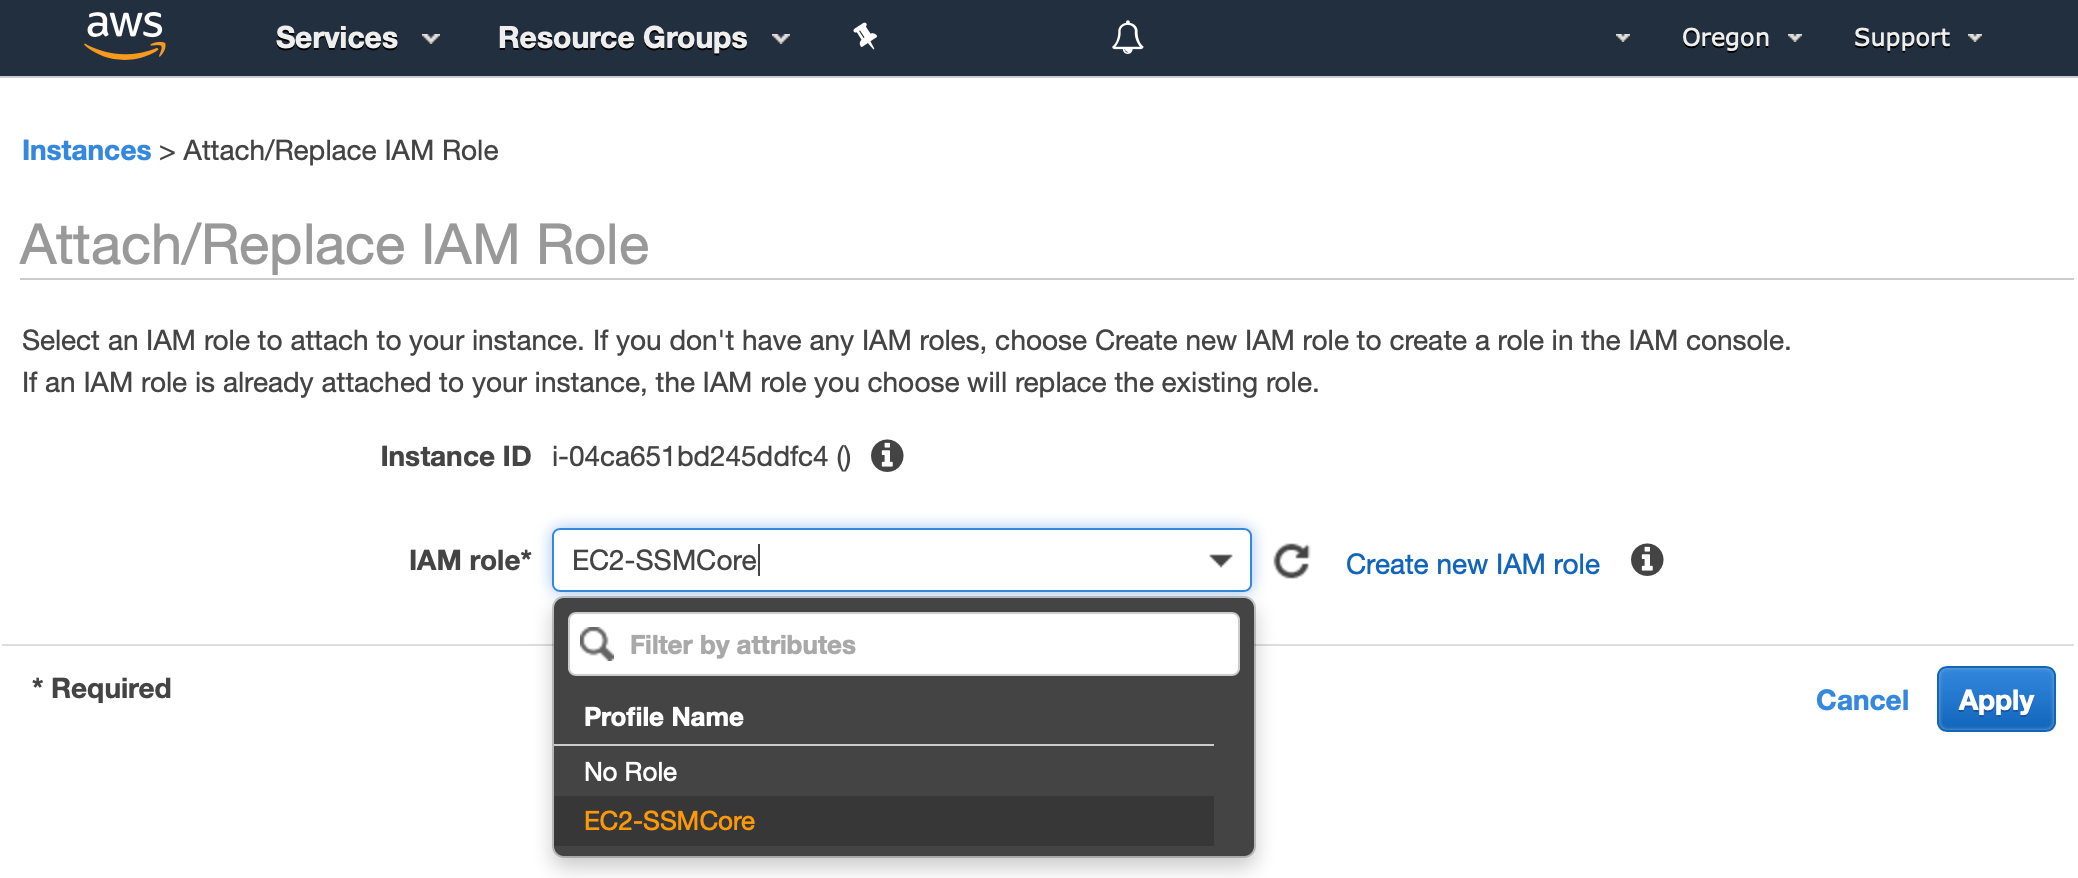 AWS Management Console shows the dialog to Attach/Replace IAM Role. The EC2-SSMCore role that was created in the last section is selected from a drop down box.